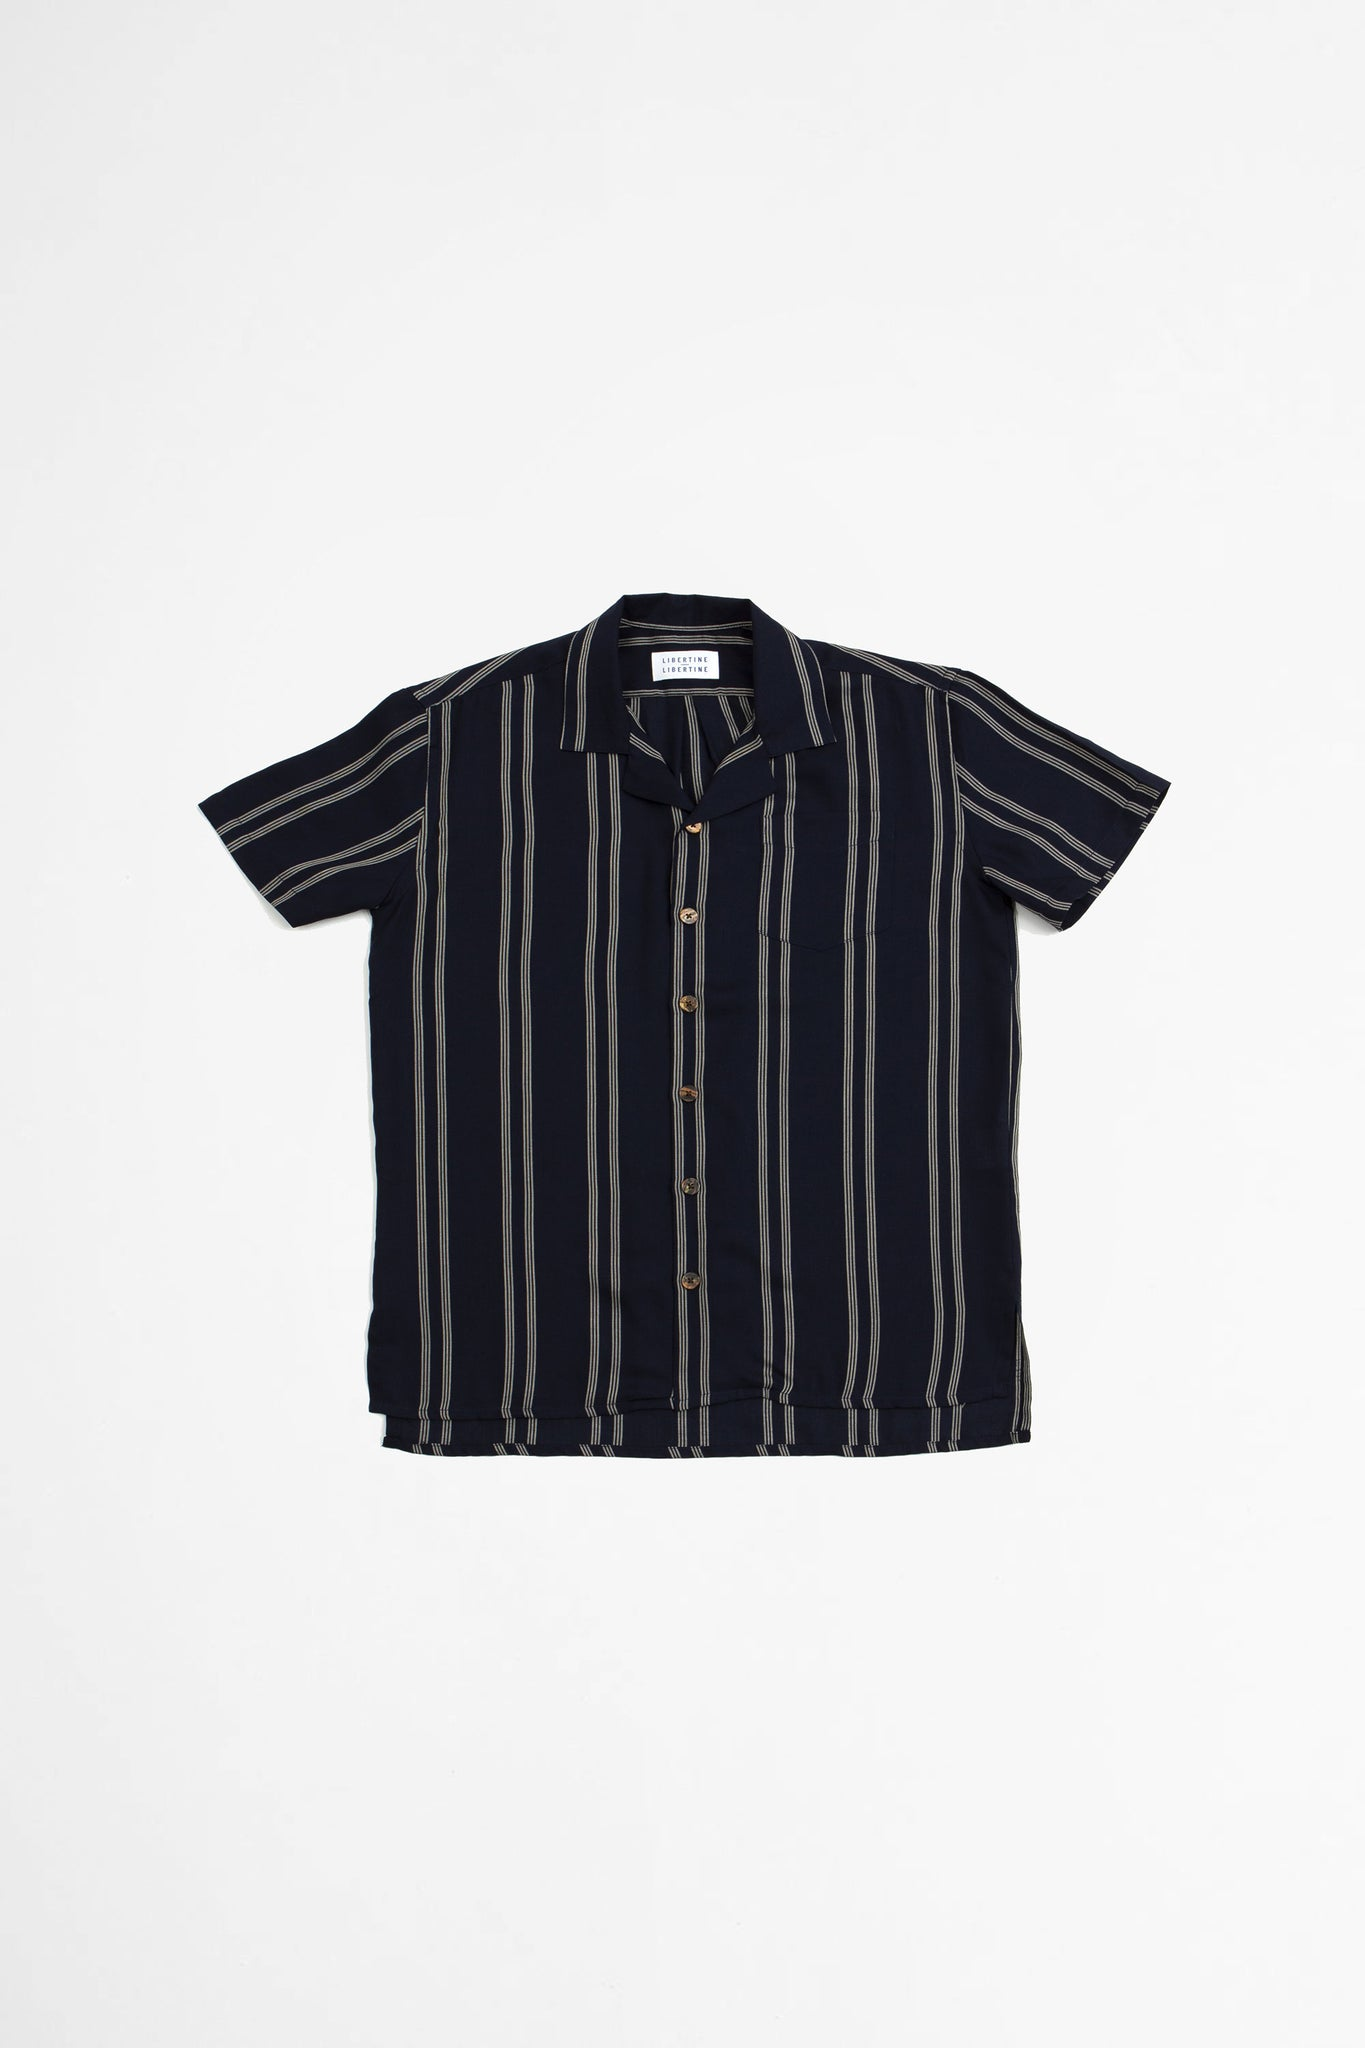 Cave S/S shirt navy pin